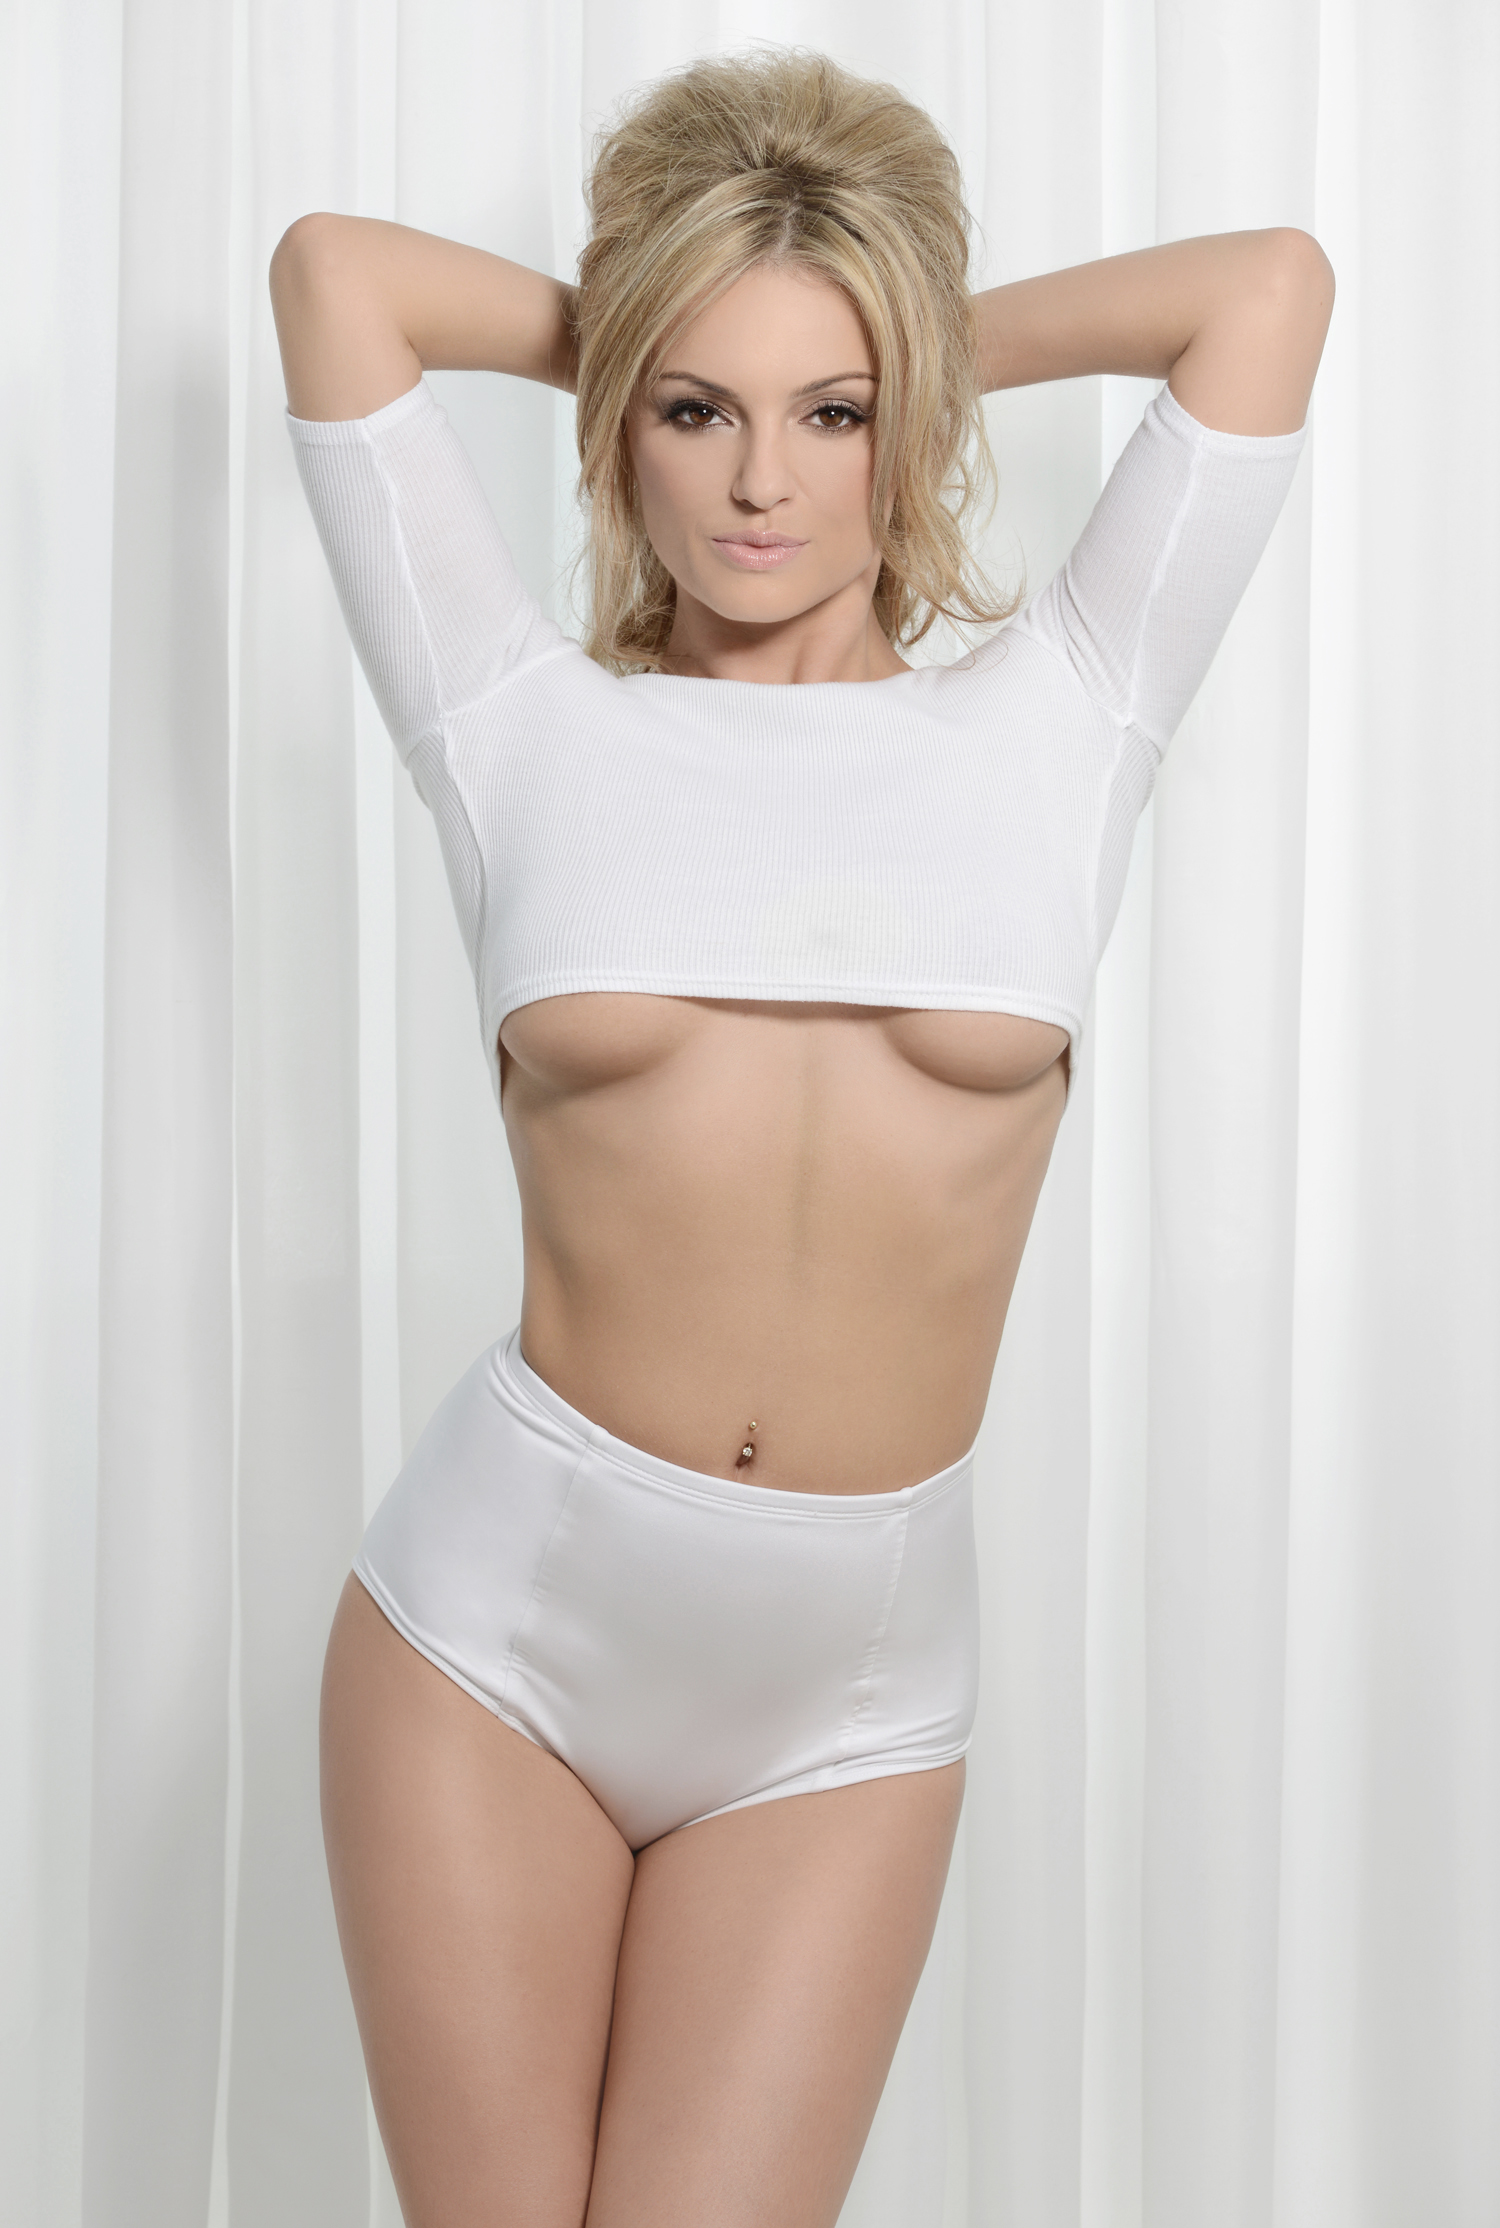 OLA JORDAN | STRICTLY COME DANCING